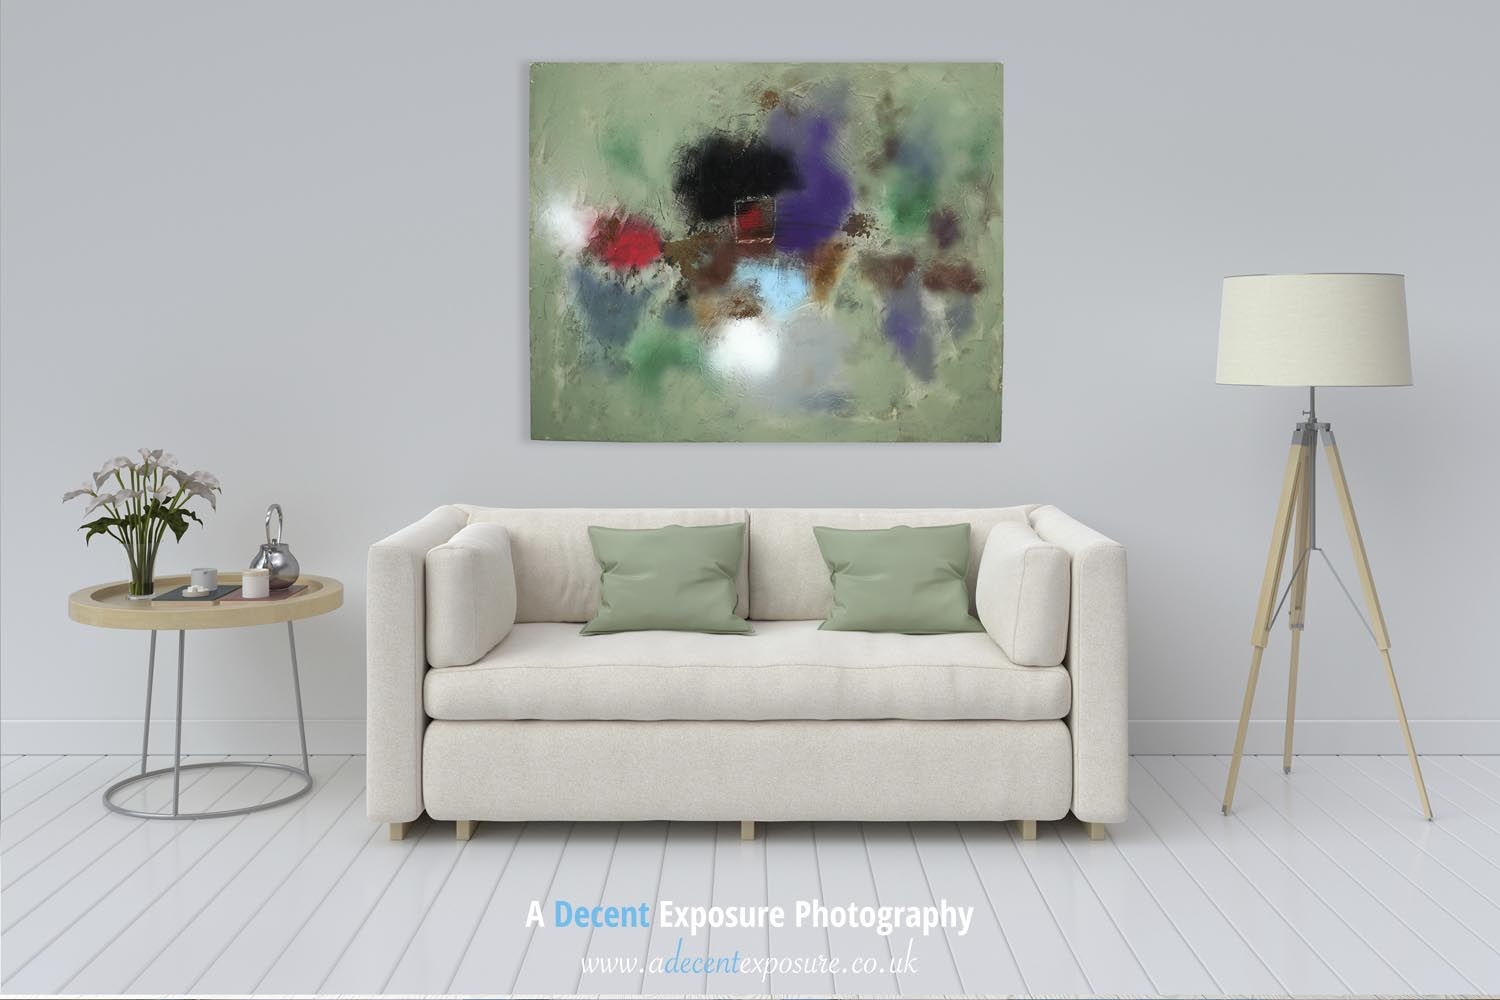 A Decent Exposure Photographt Art Reproduction wall hung painting